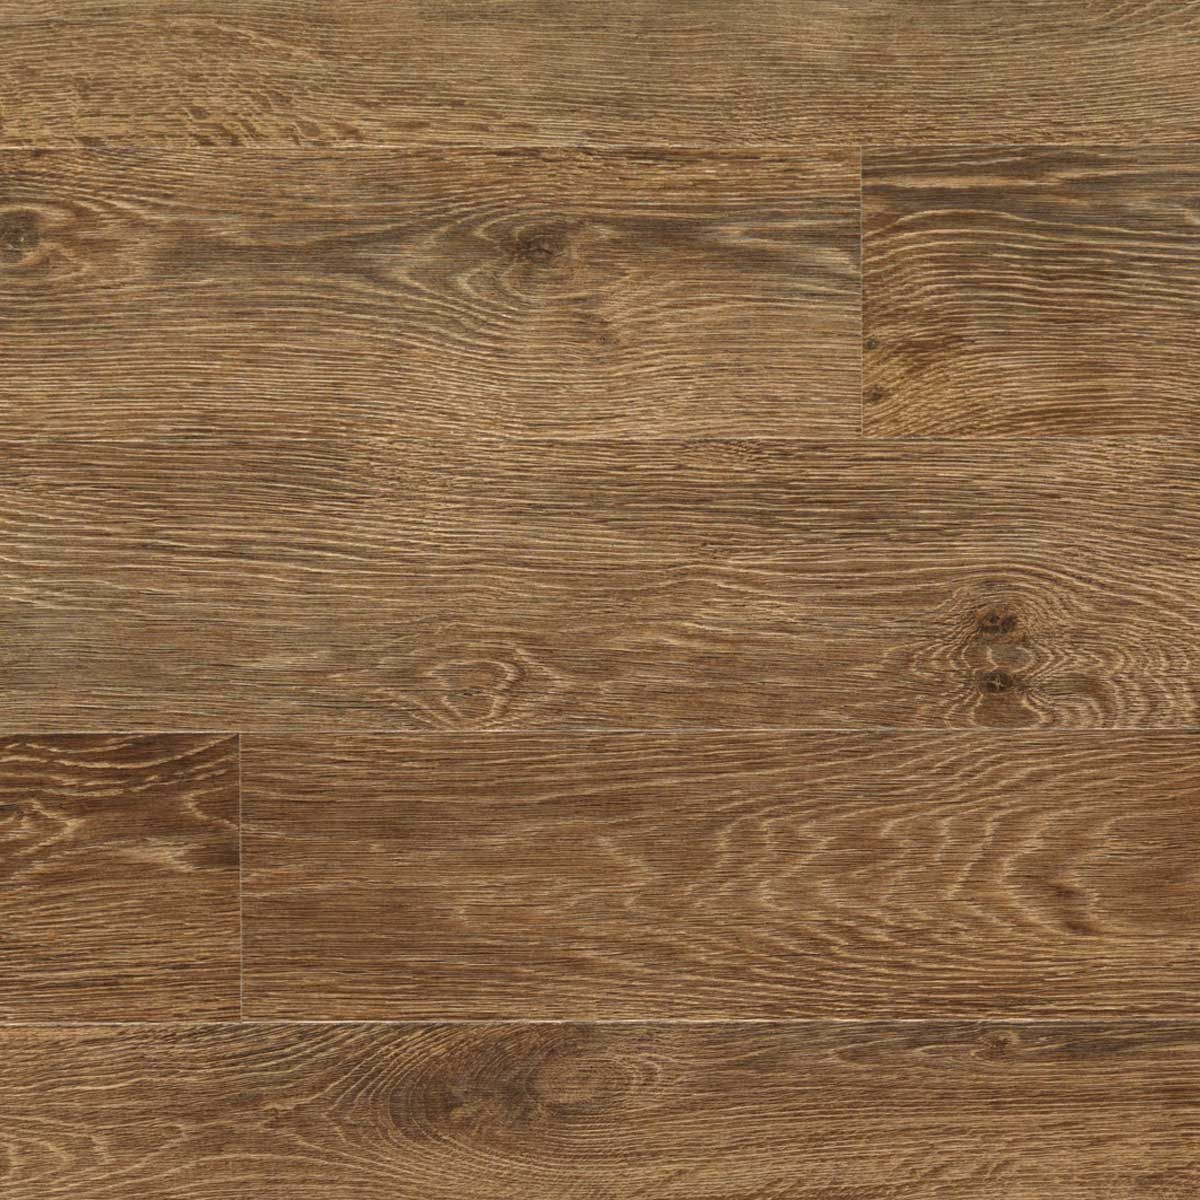 Rustic Oak Natural Planks Quick Stepcom Basement